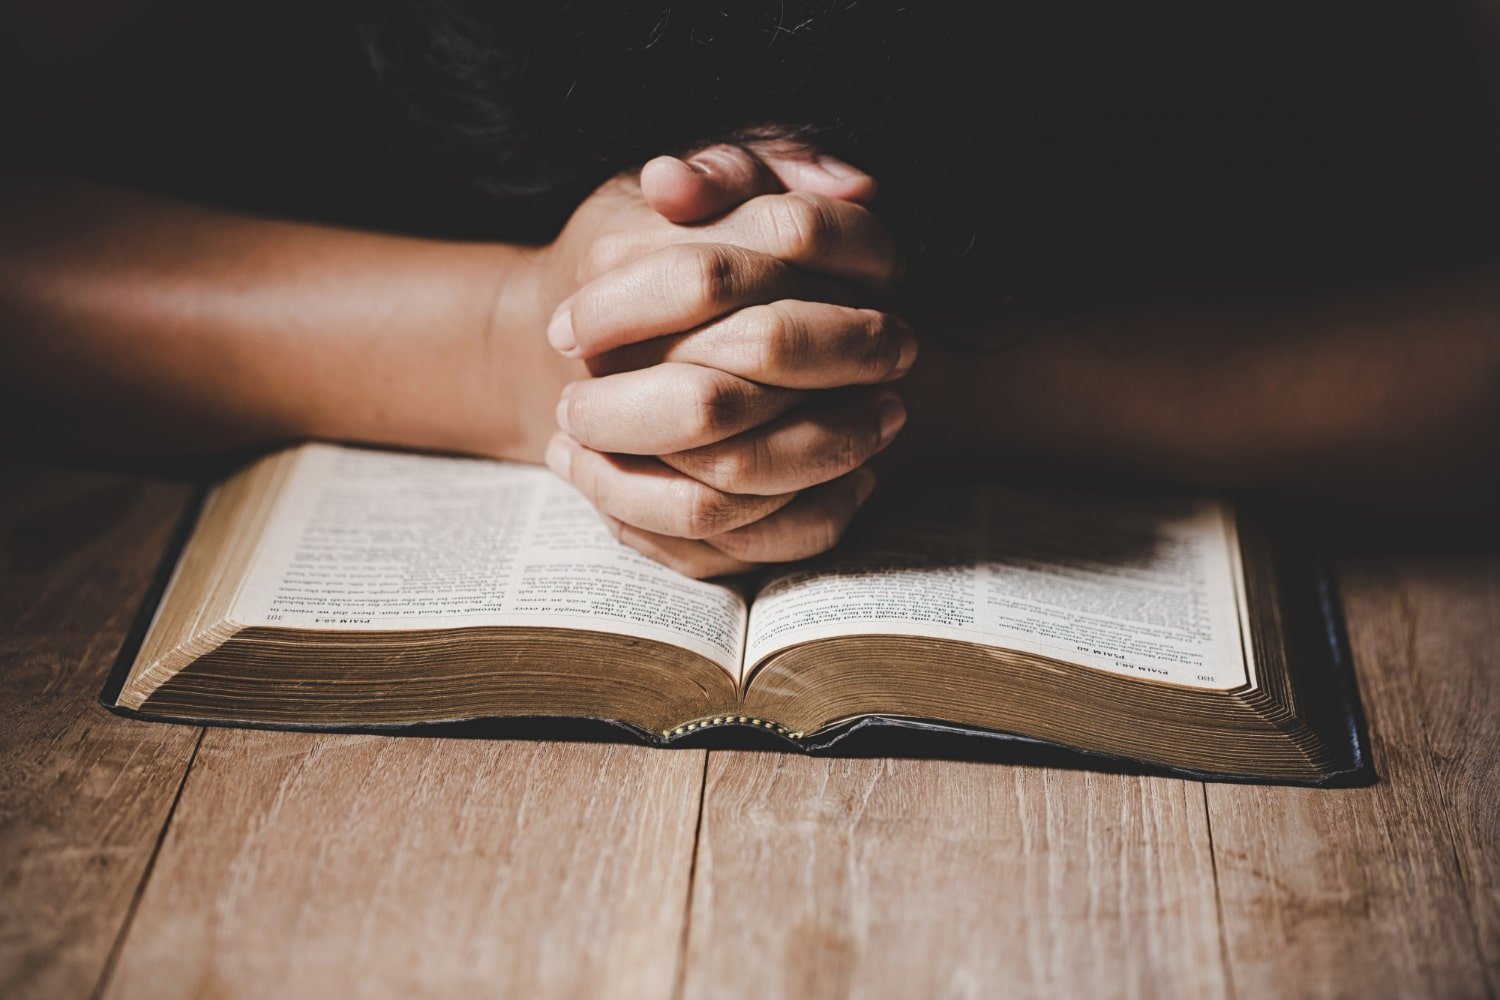 christian-life-crisis-prayer-god